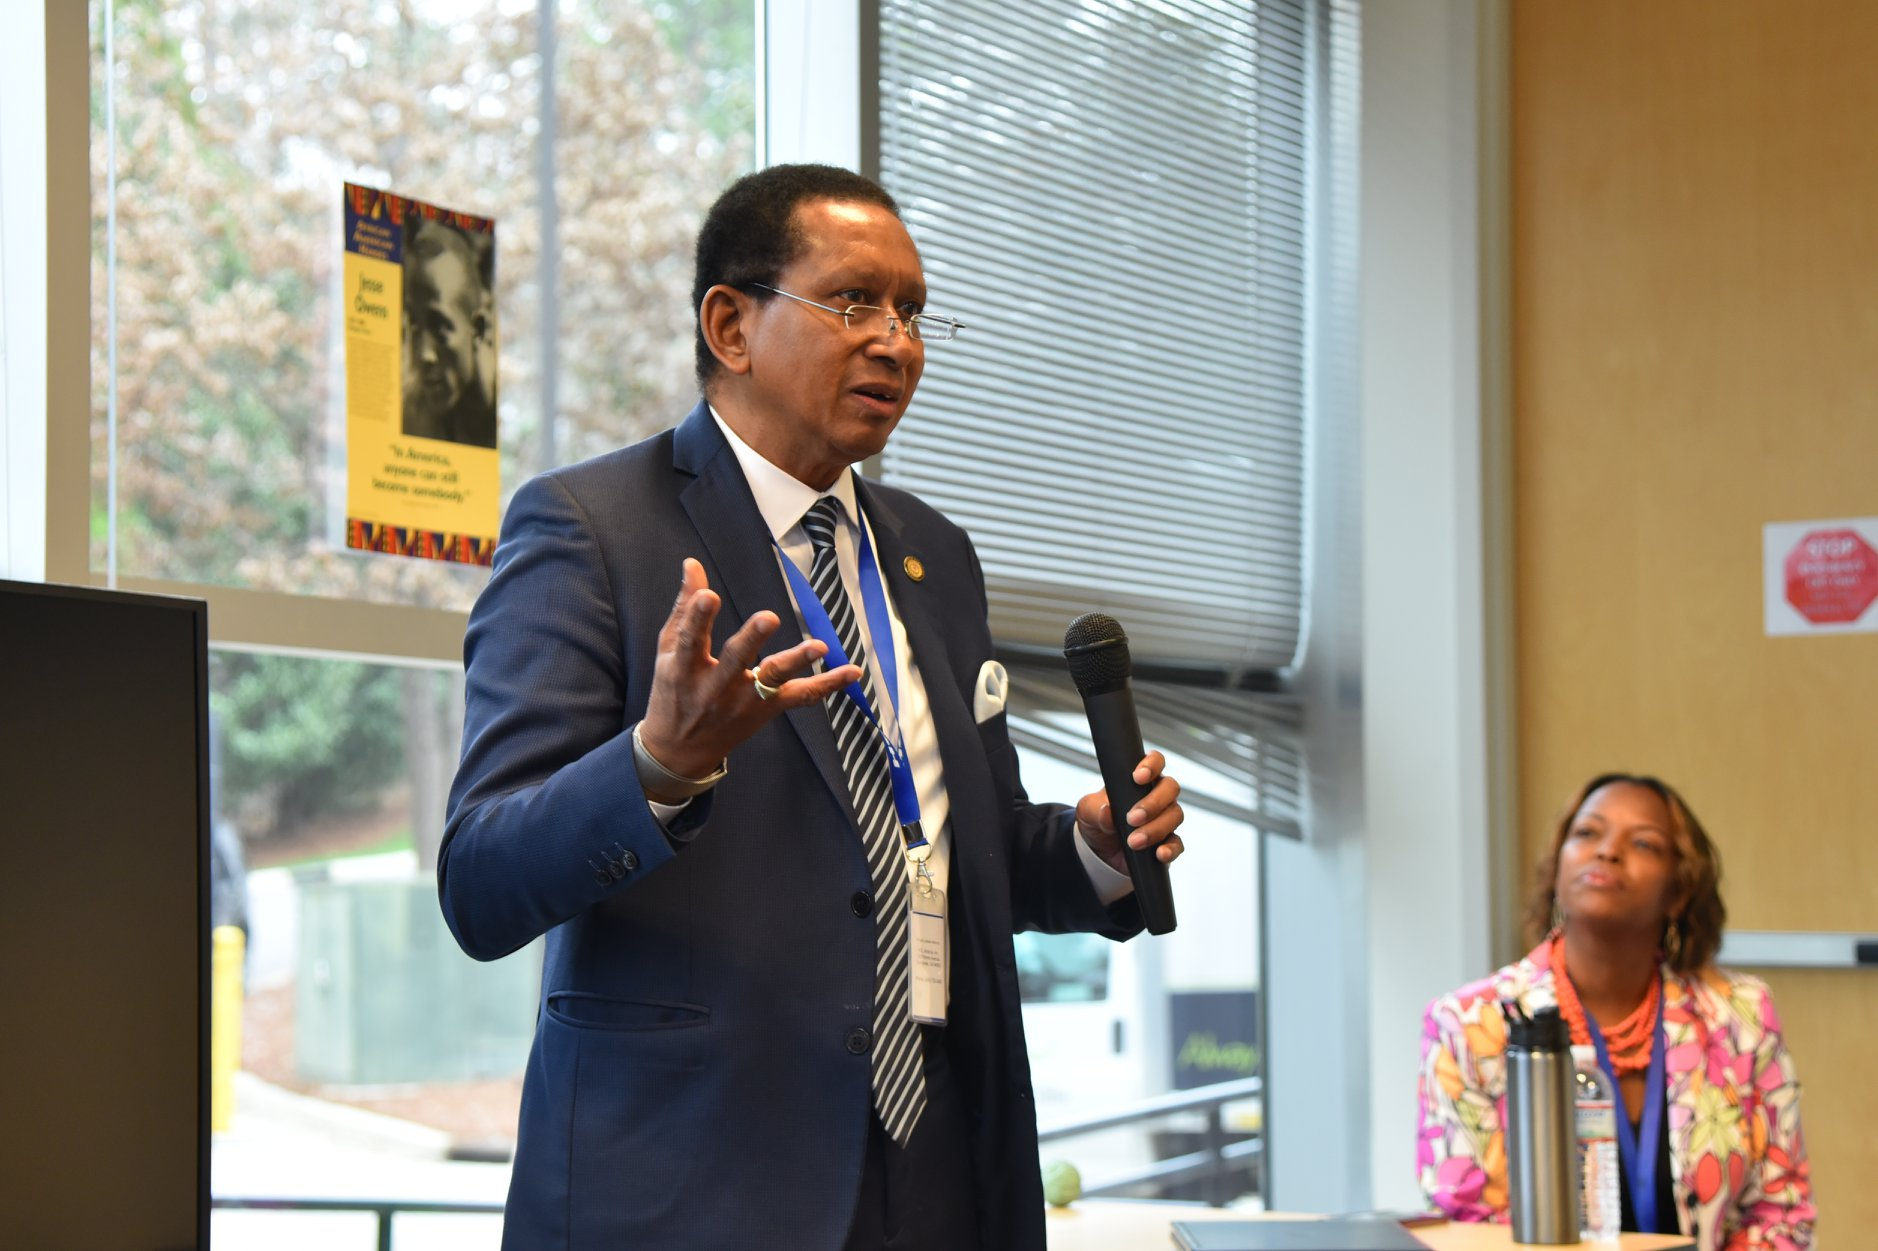 Senator McKissick gives a presentation at a Black History Month Event in 2018. www.mckissickfornc.org